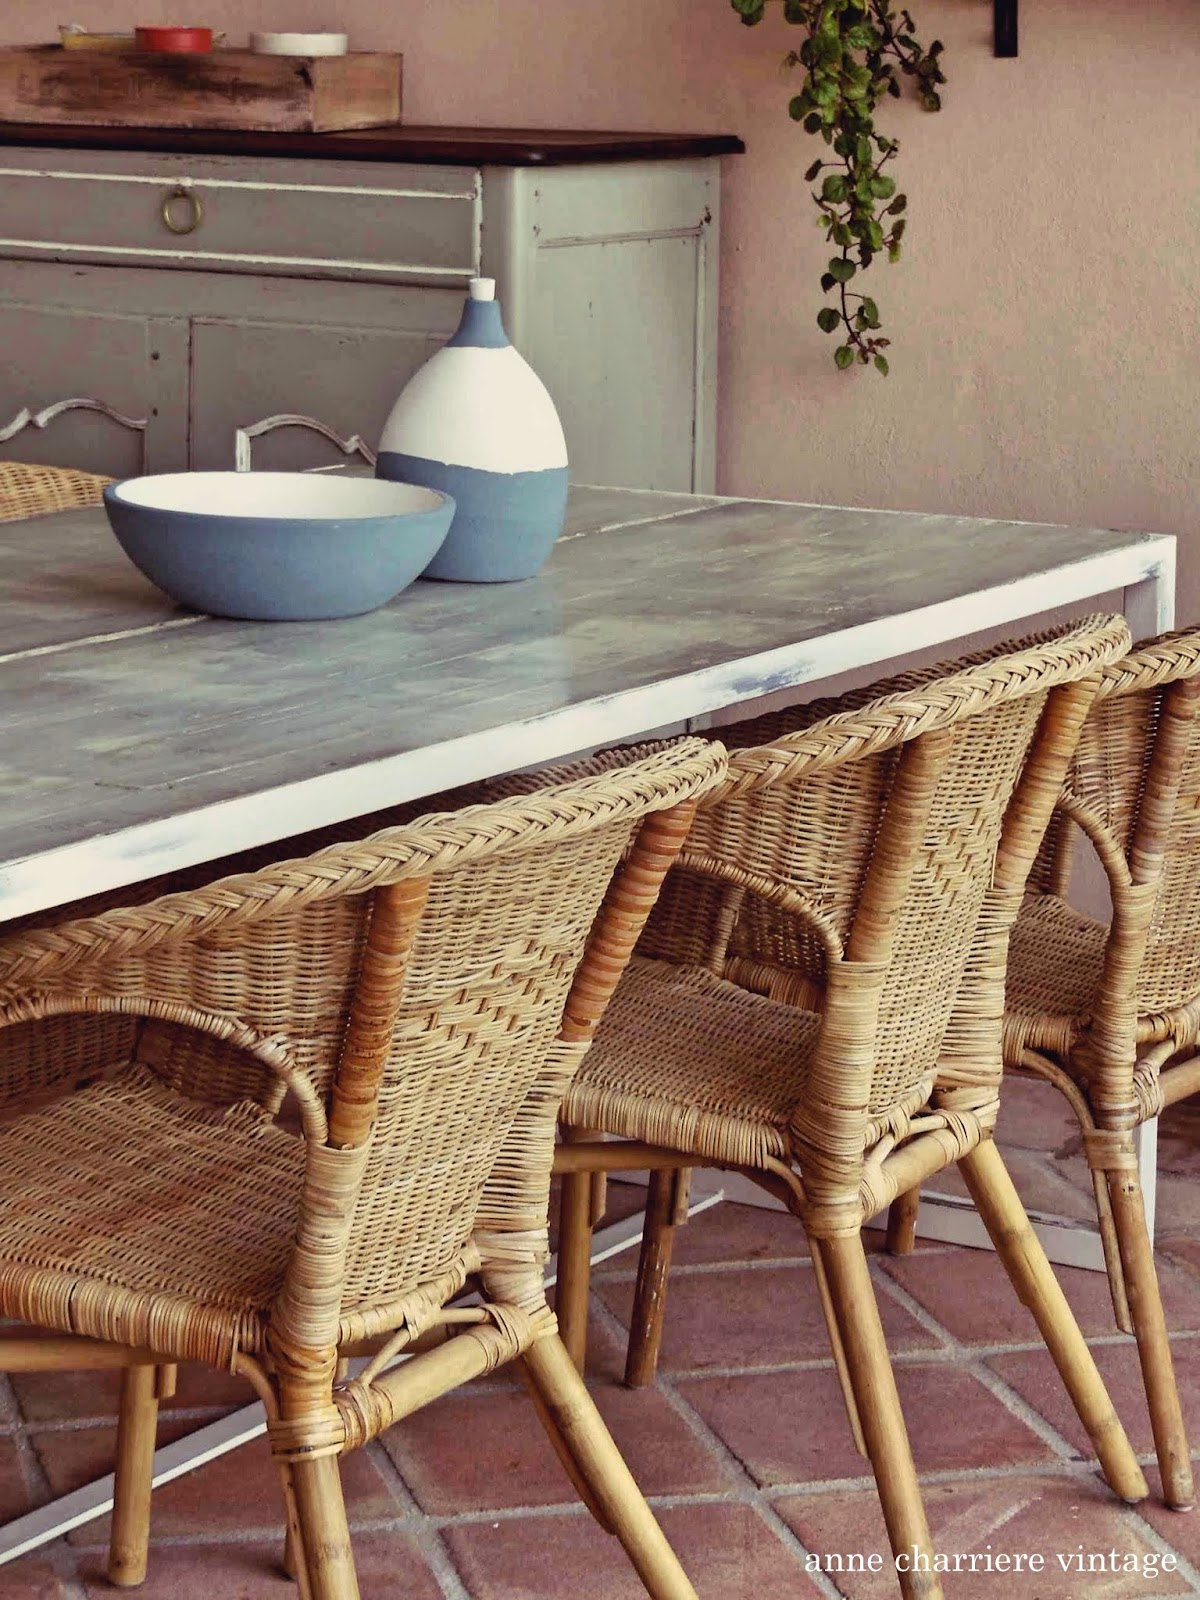 anne charriere vintage, madriers pour table terrasse,